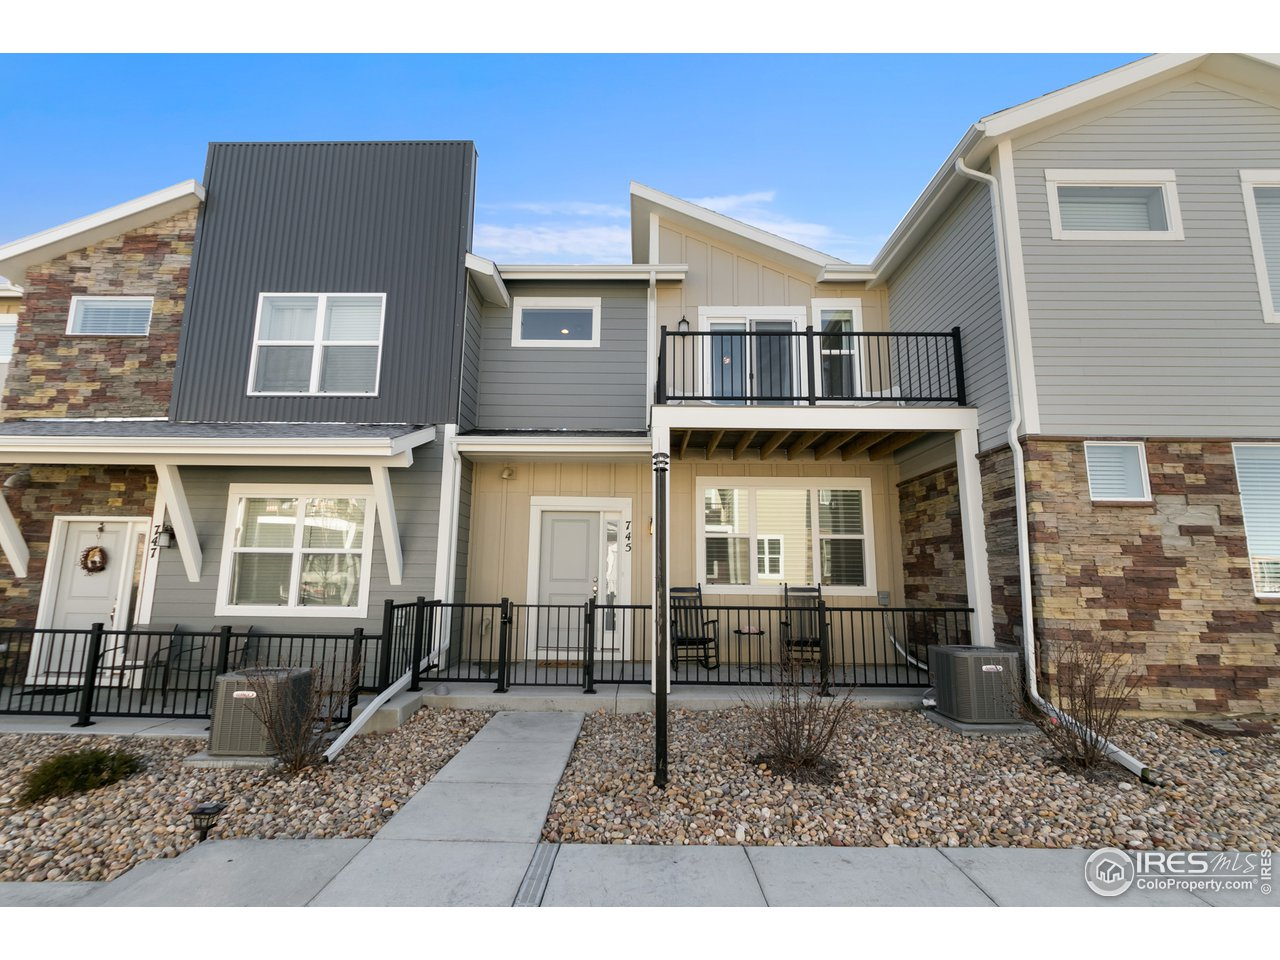 745 Robert St, Longmont CO 80503